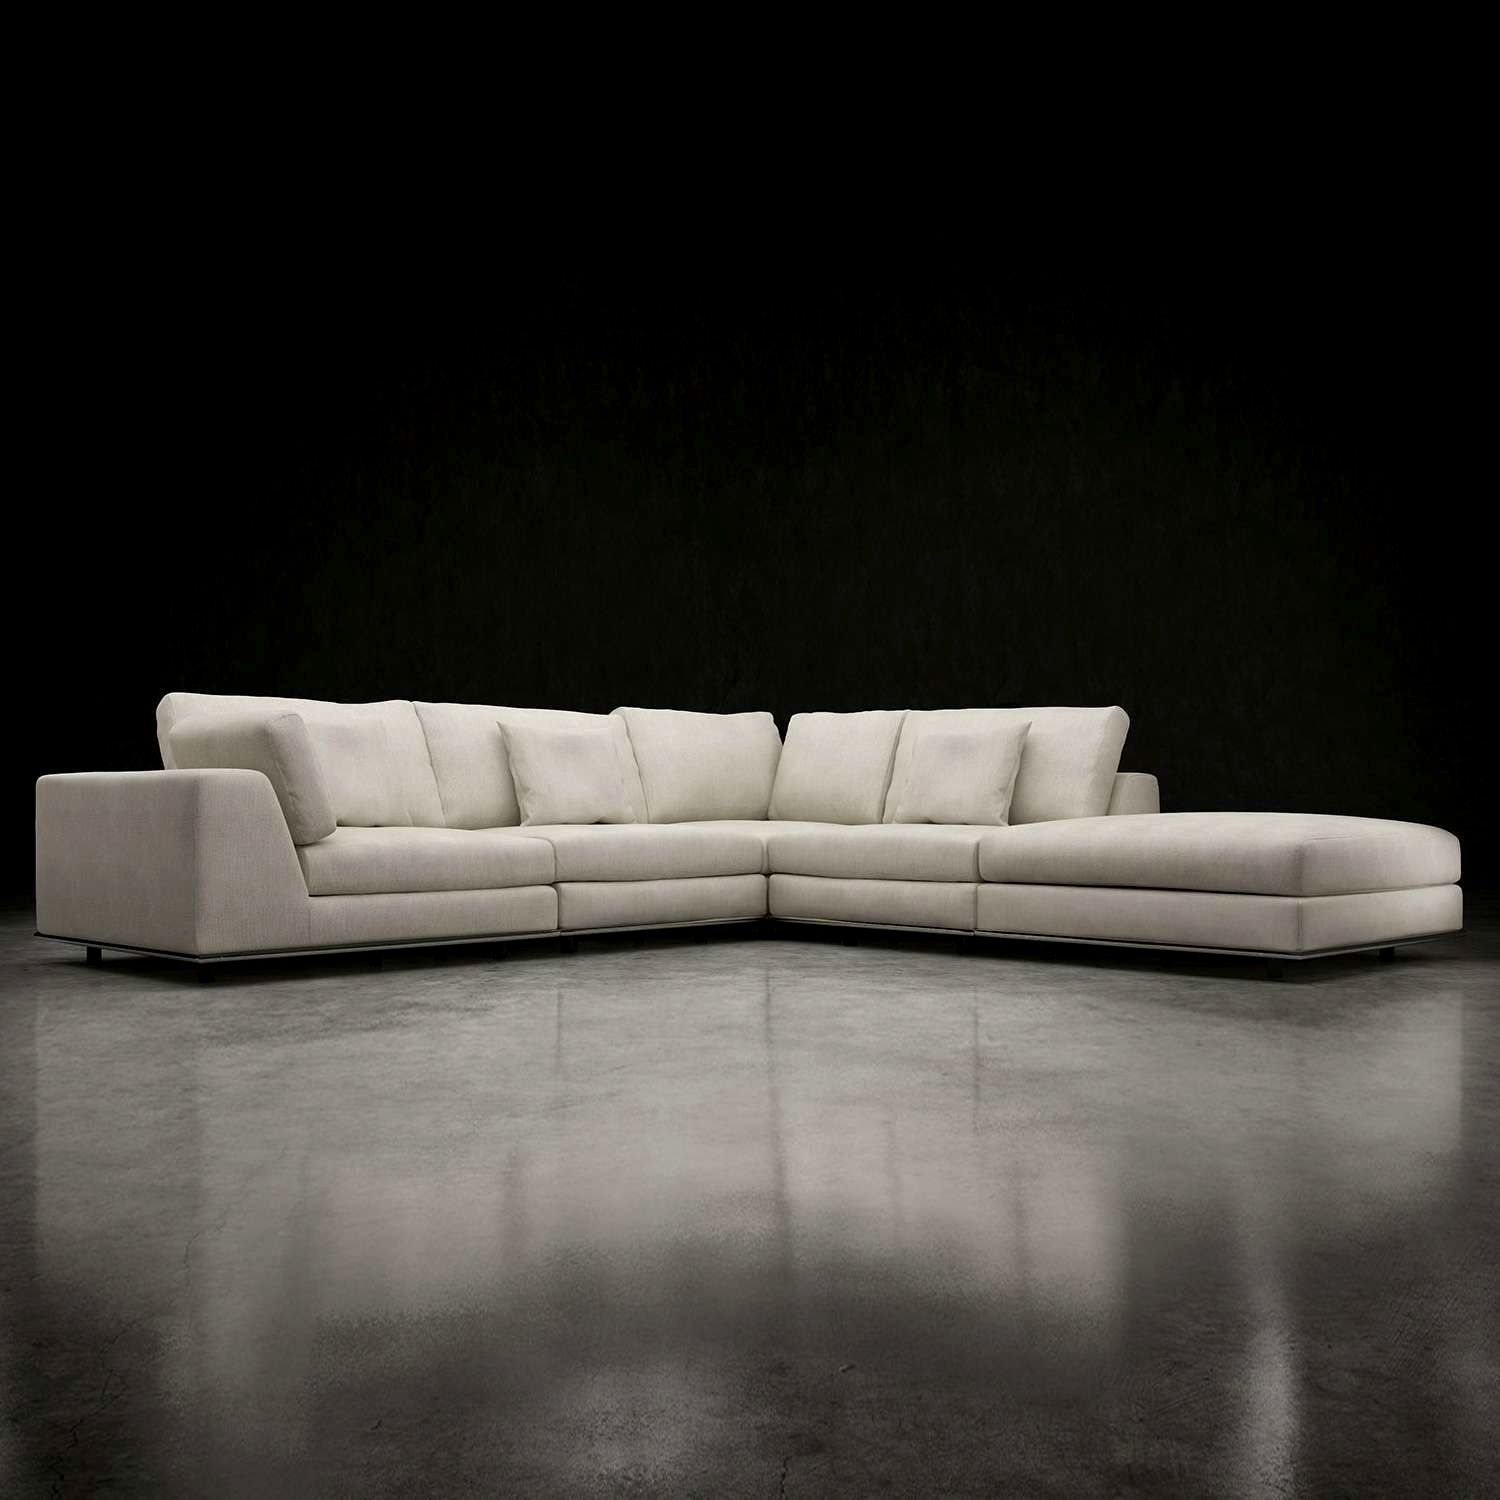 elegant modular sectional sofa picture-Stunning Modular Sectional sofa Décor